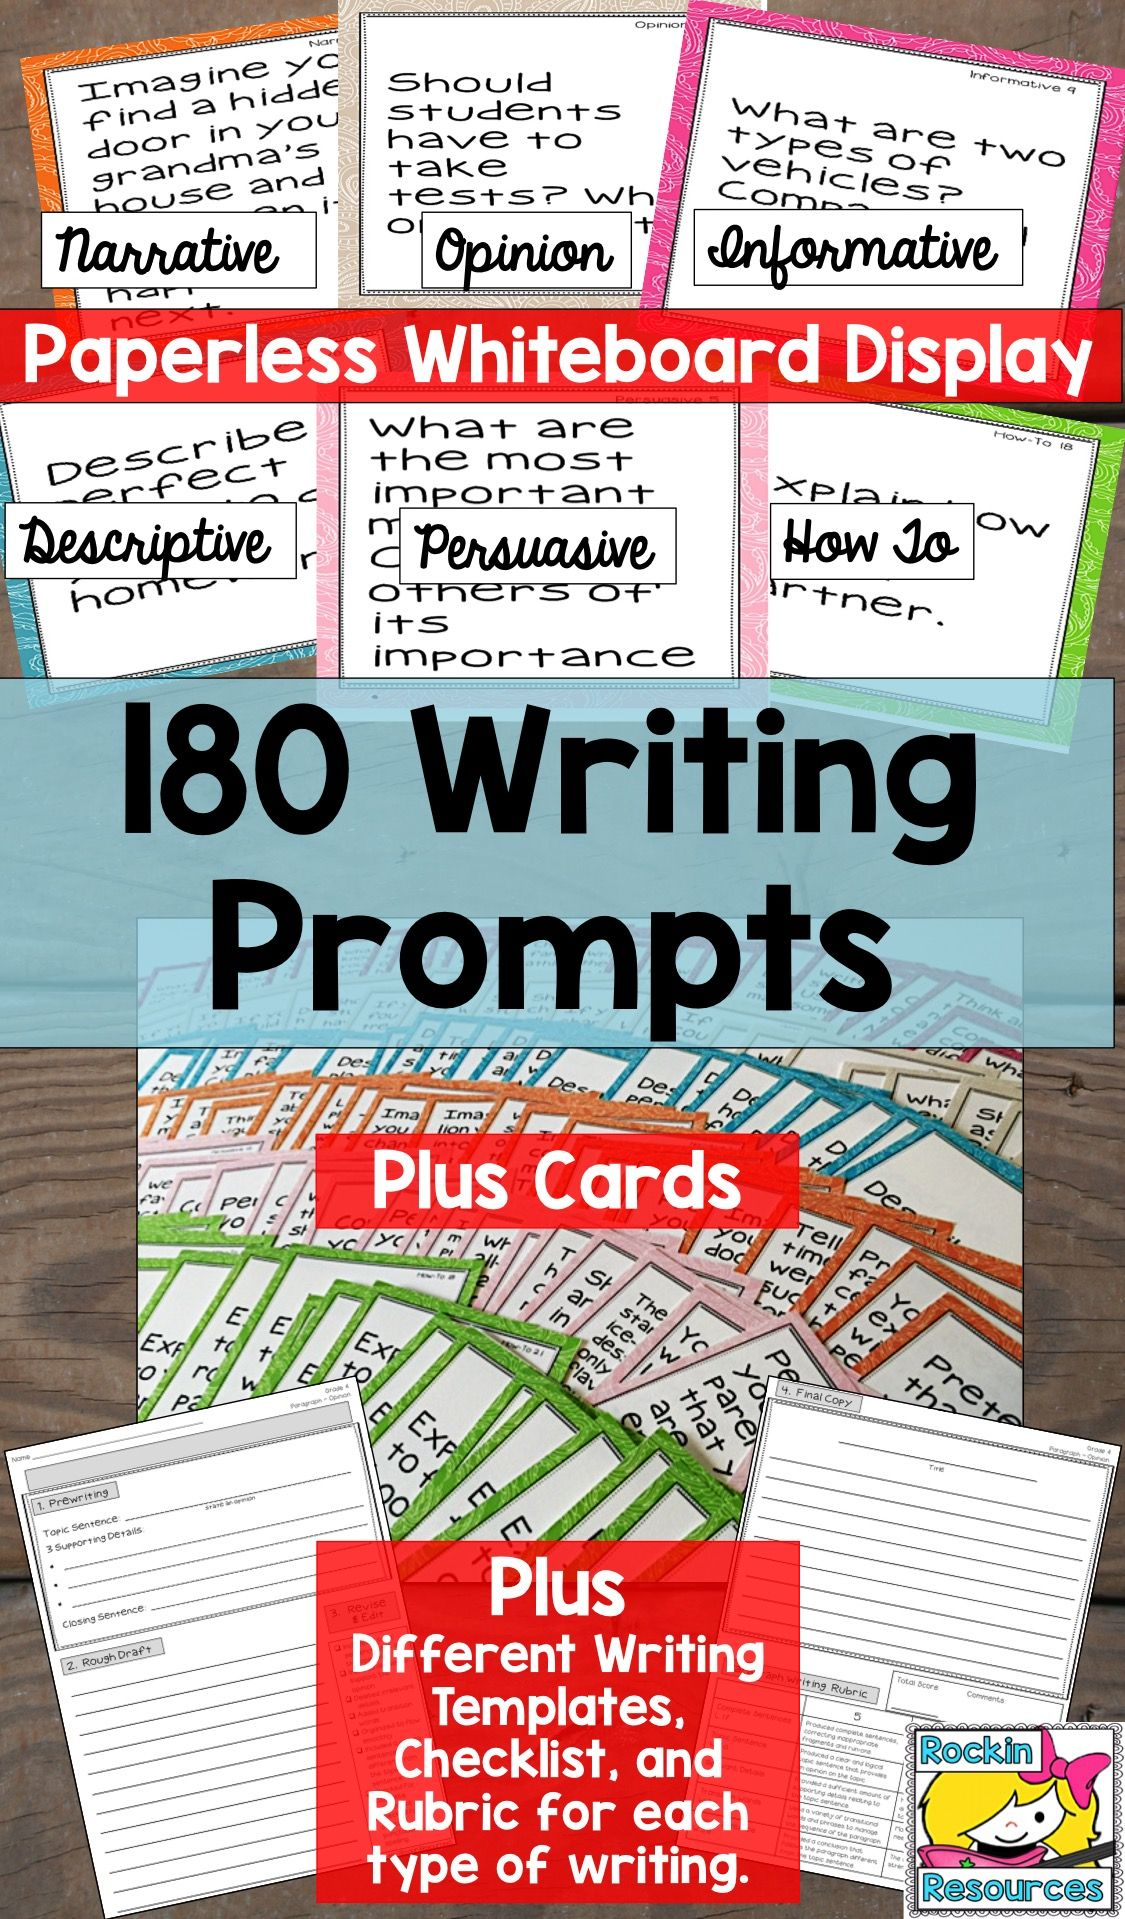 Paragraph Writing Prompts Essay Writing Prompts Writing Checklists And Rubrics